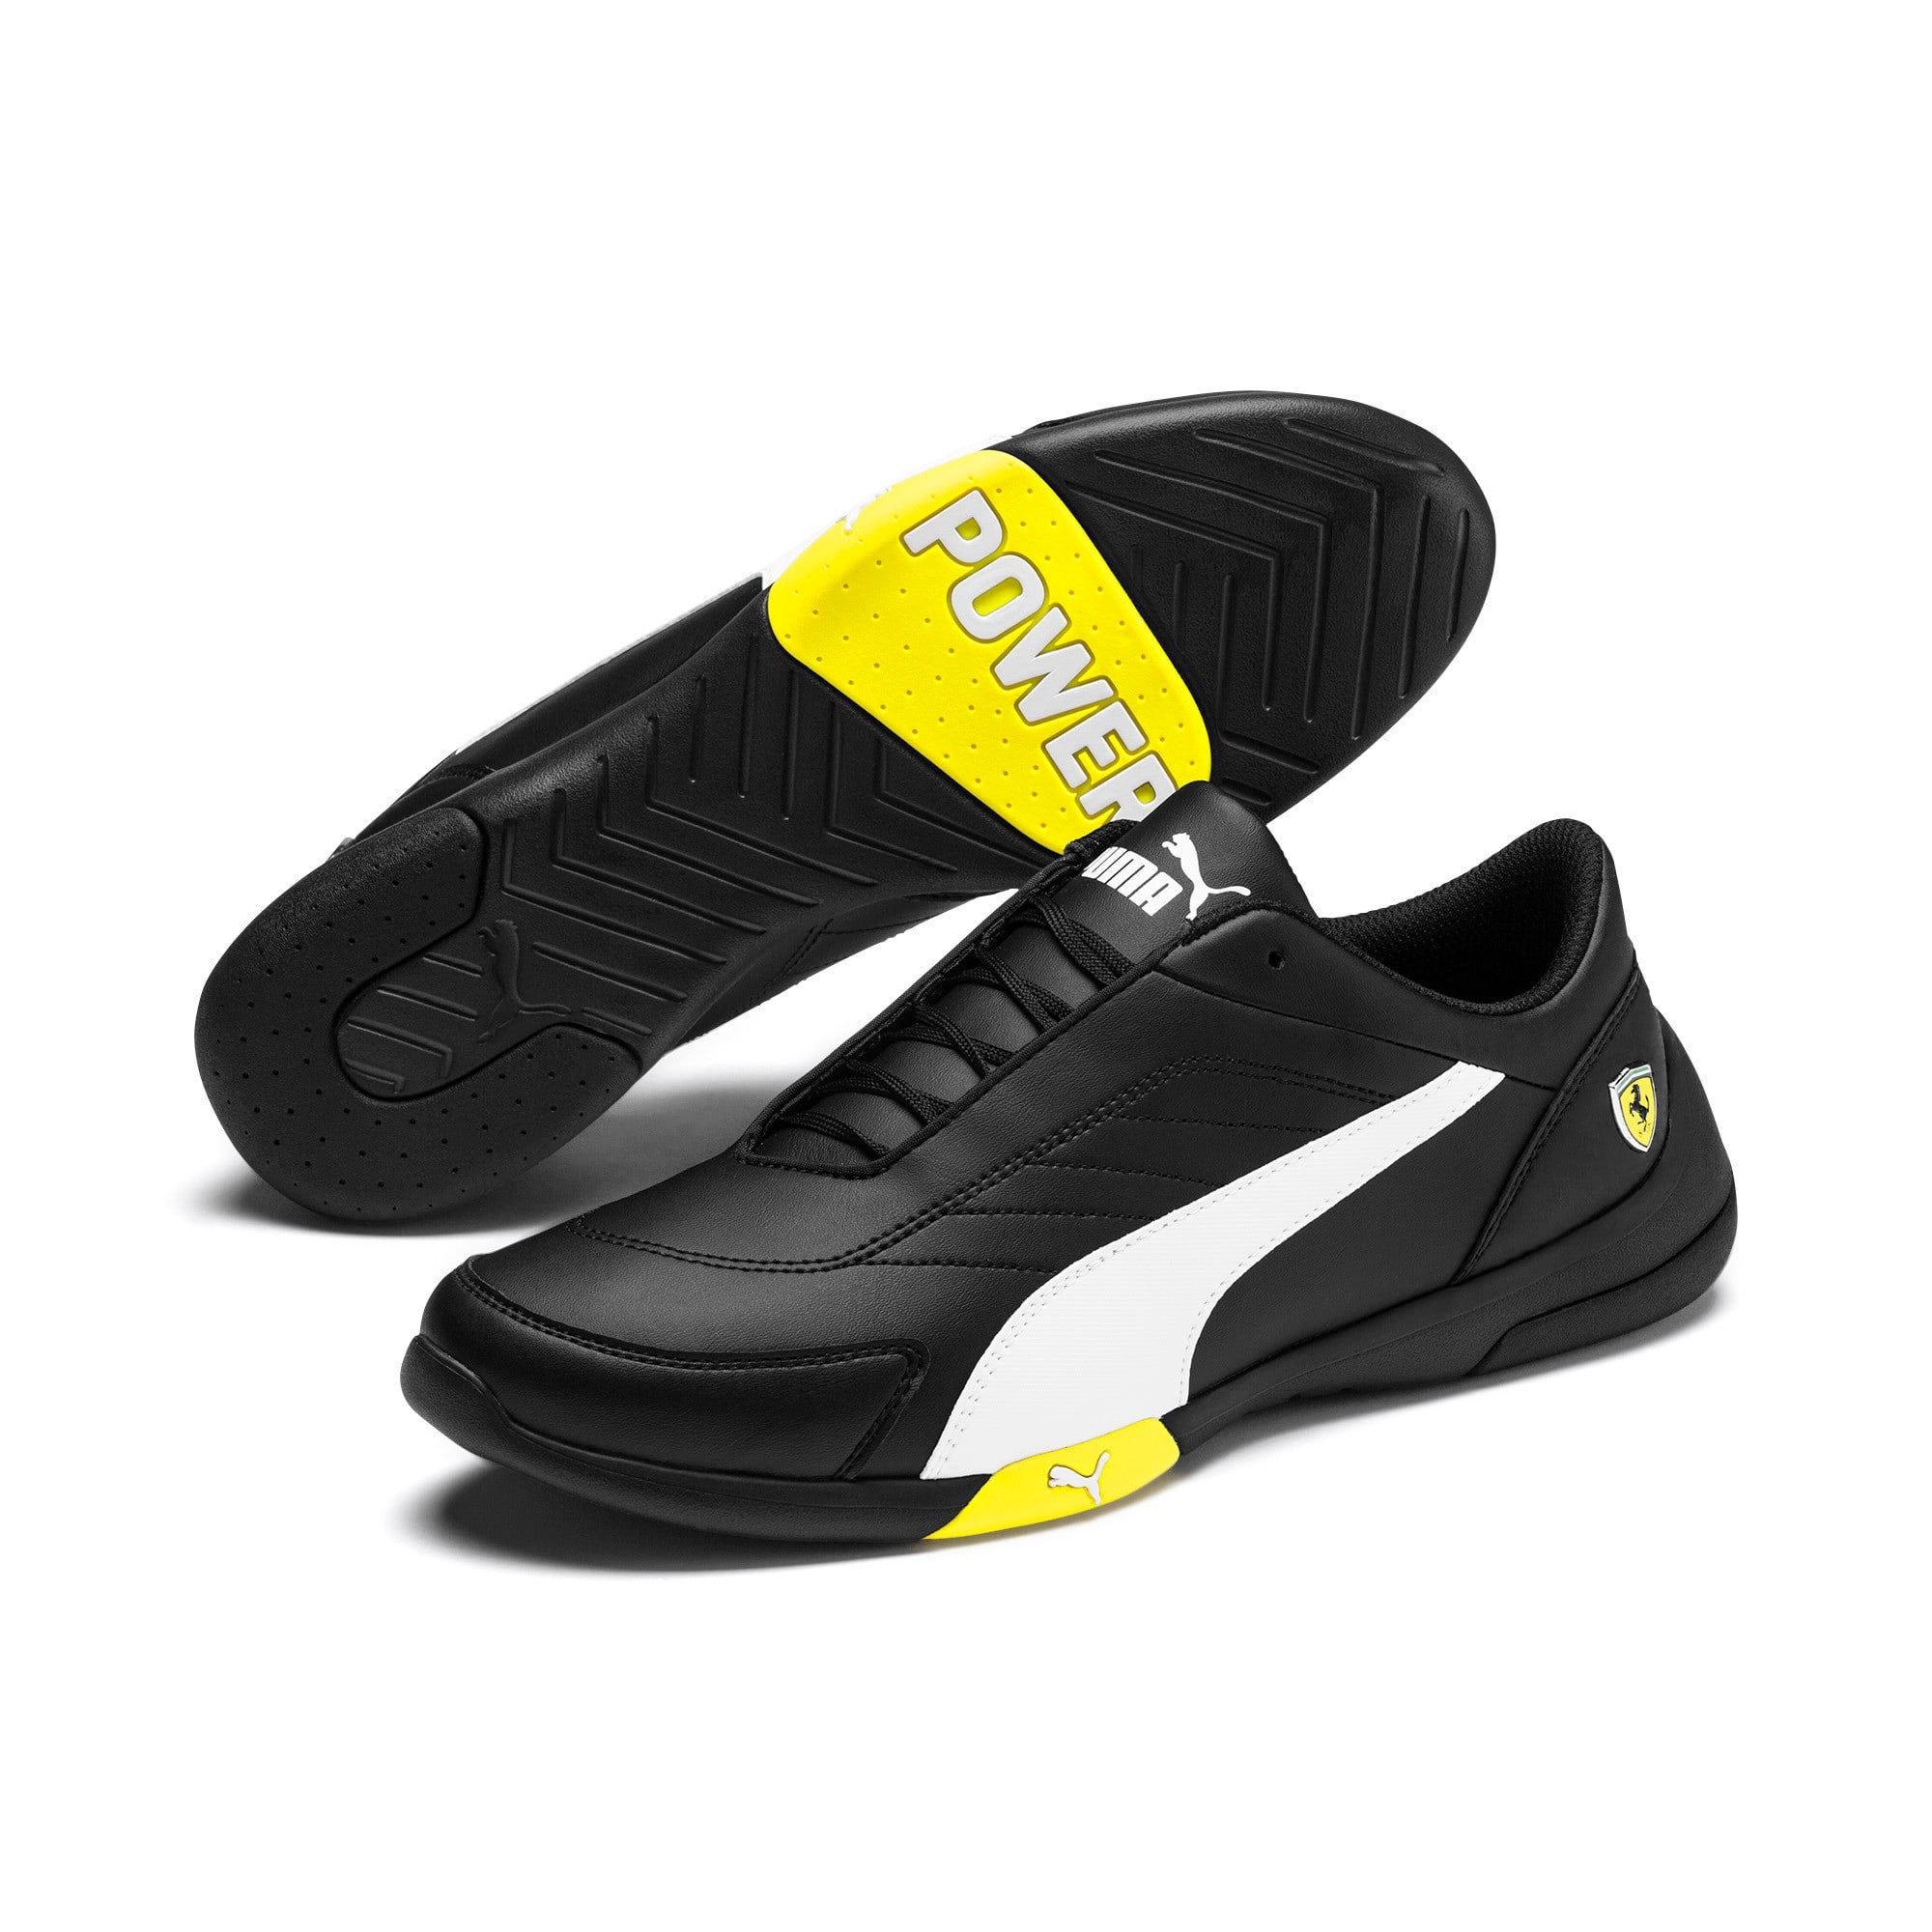 Thumbnail 3 of Ferrari Kart Cat III Sneaker, Black-White-Blazing Yellow, medium